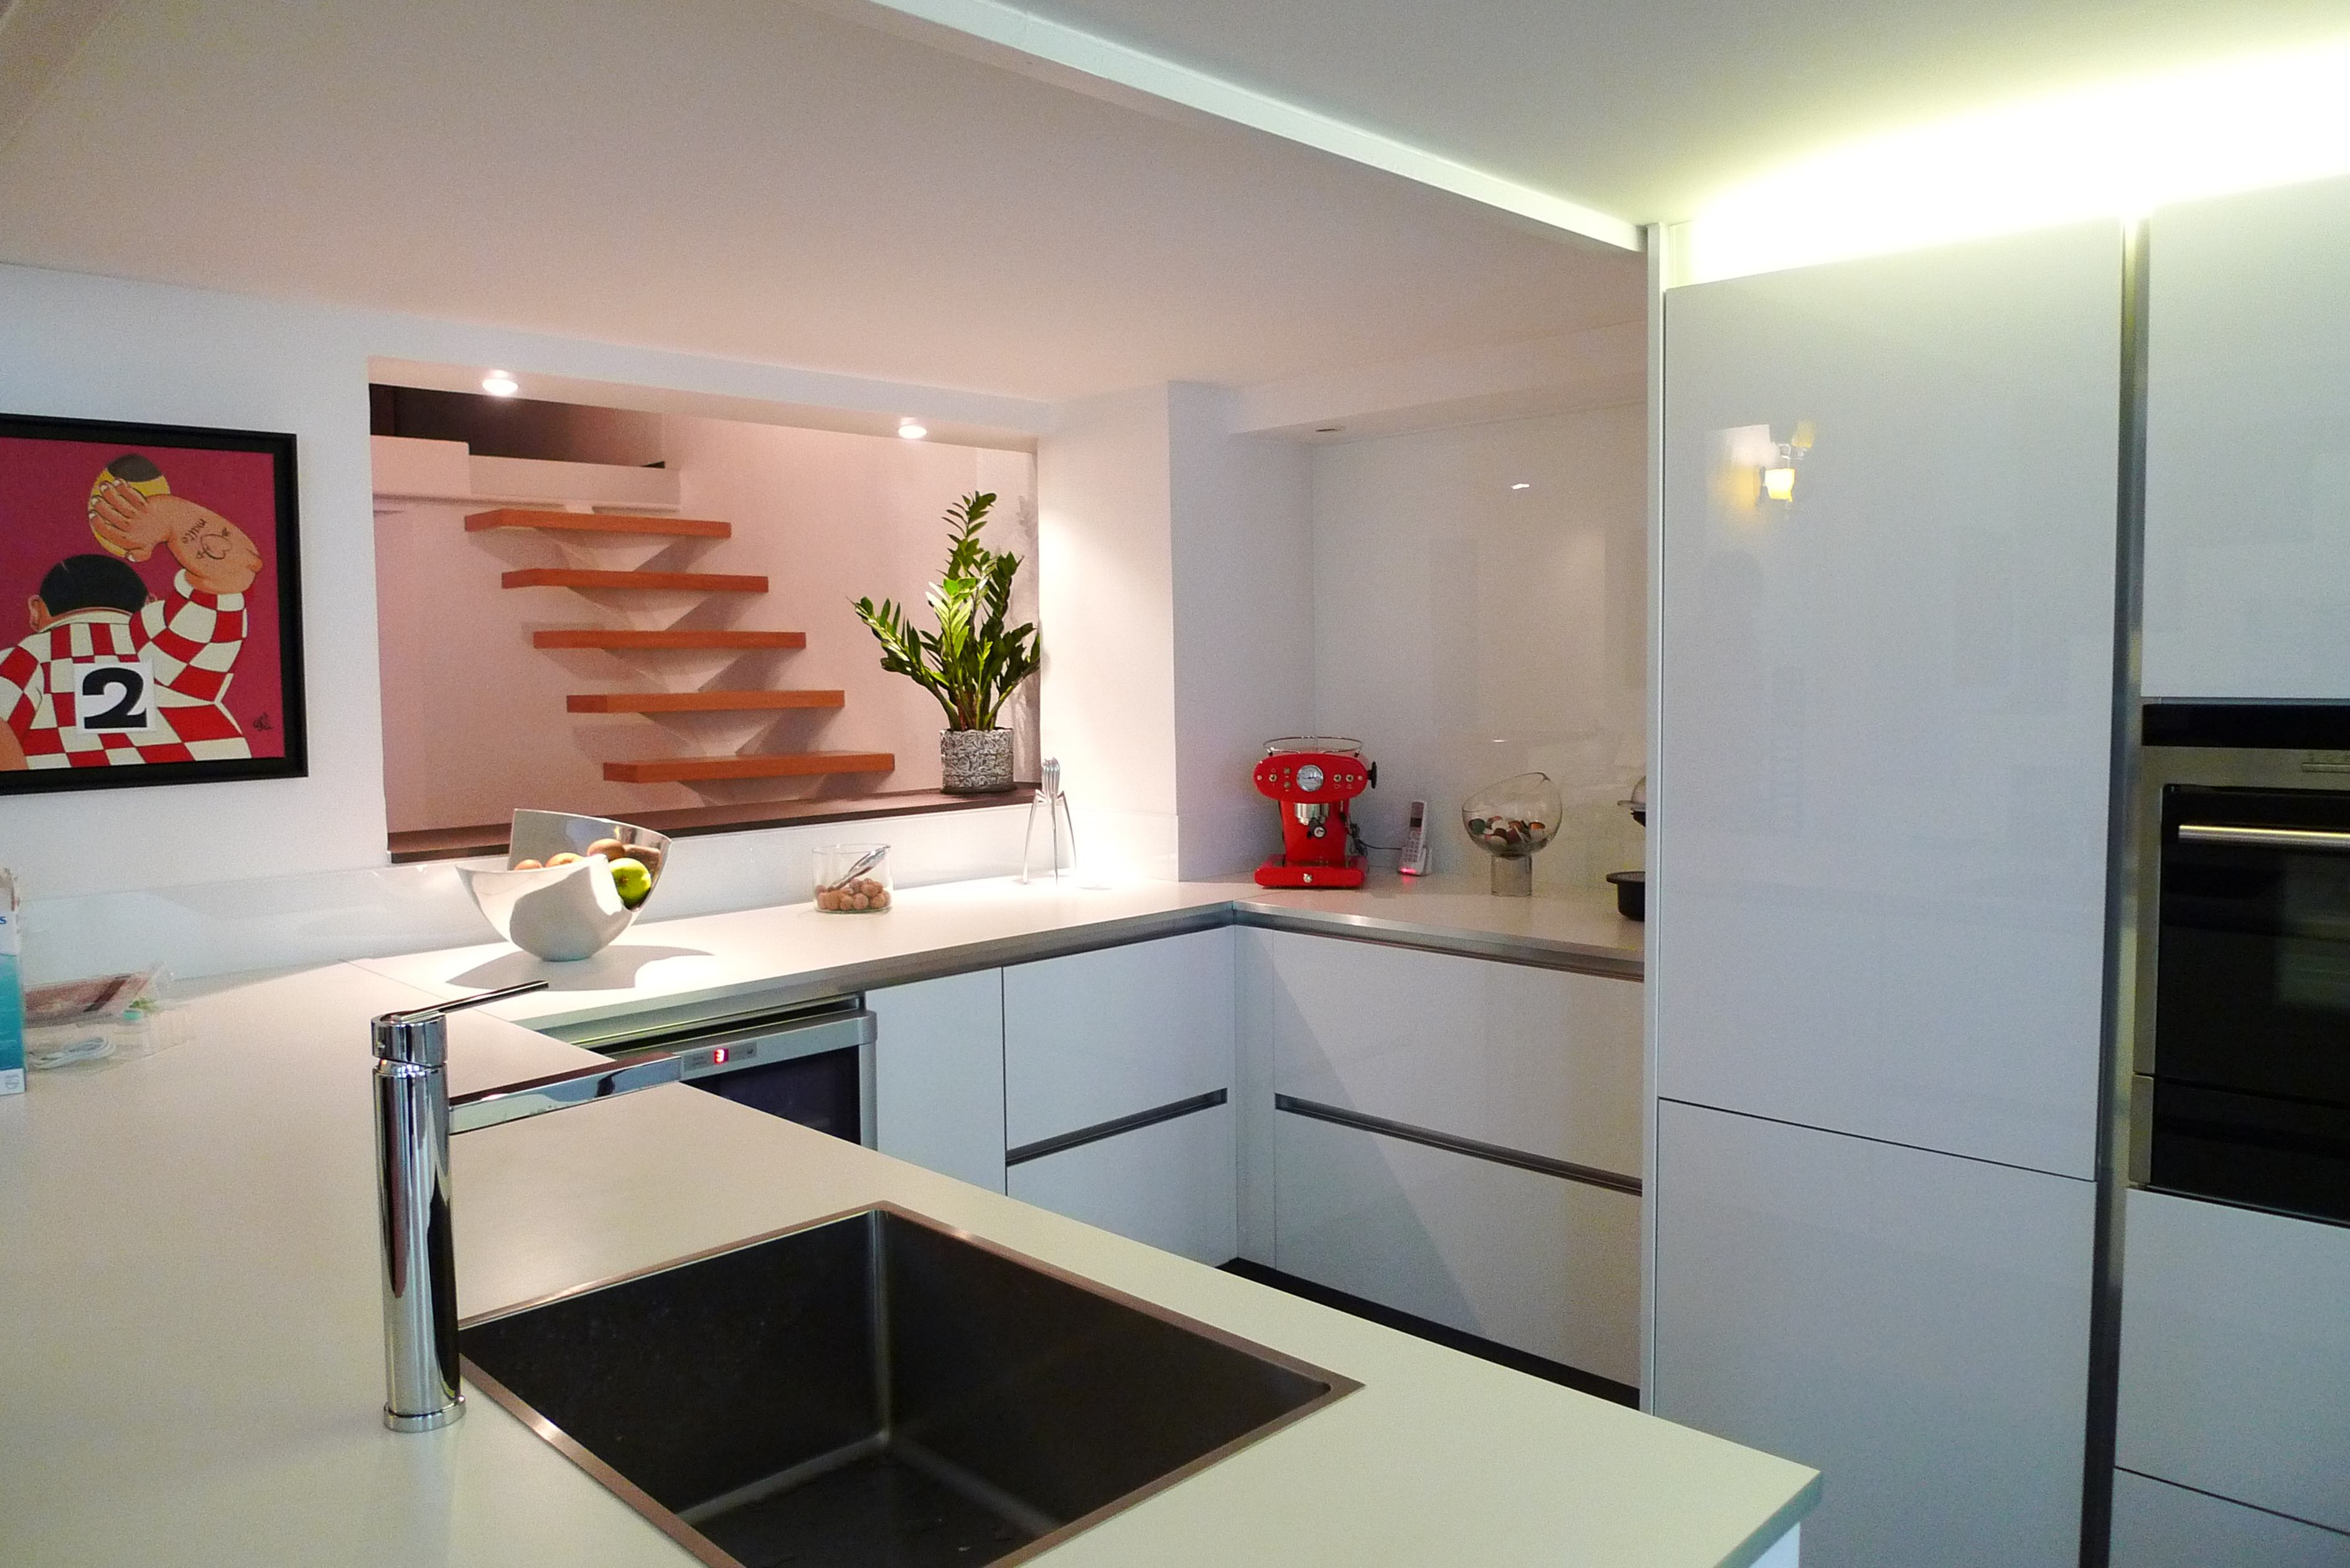 rbconcept-appartement-bourgeois-cuisine-ouverte